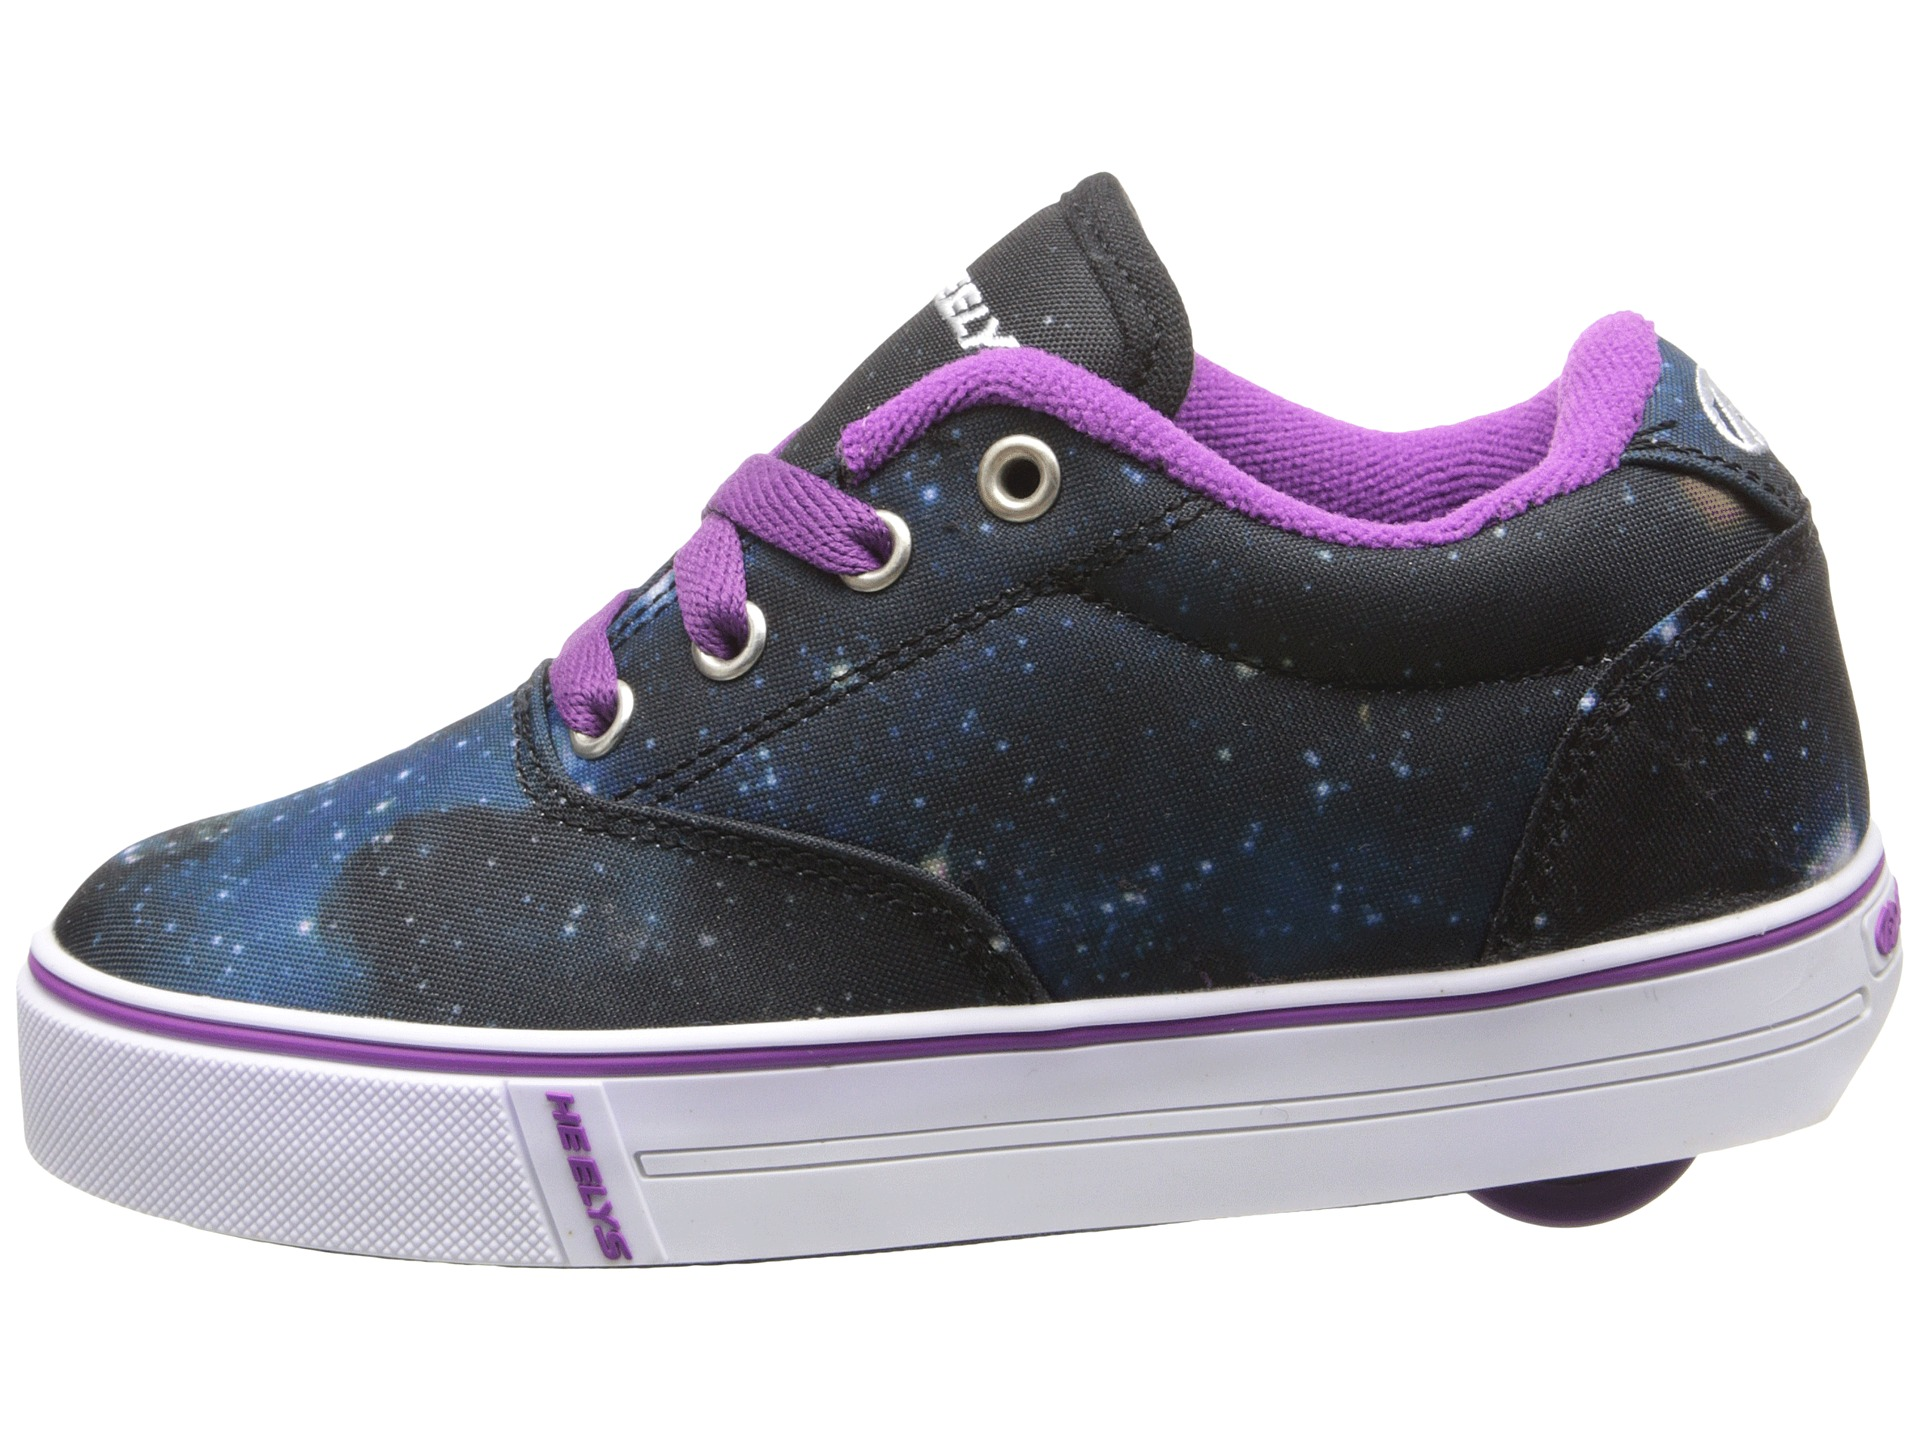 heelys launch 2 0 little kid big kid womens shipped free at zappos. Black Bedroom Furniture Sets. Home Design Ideas